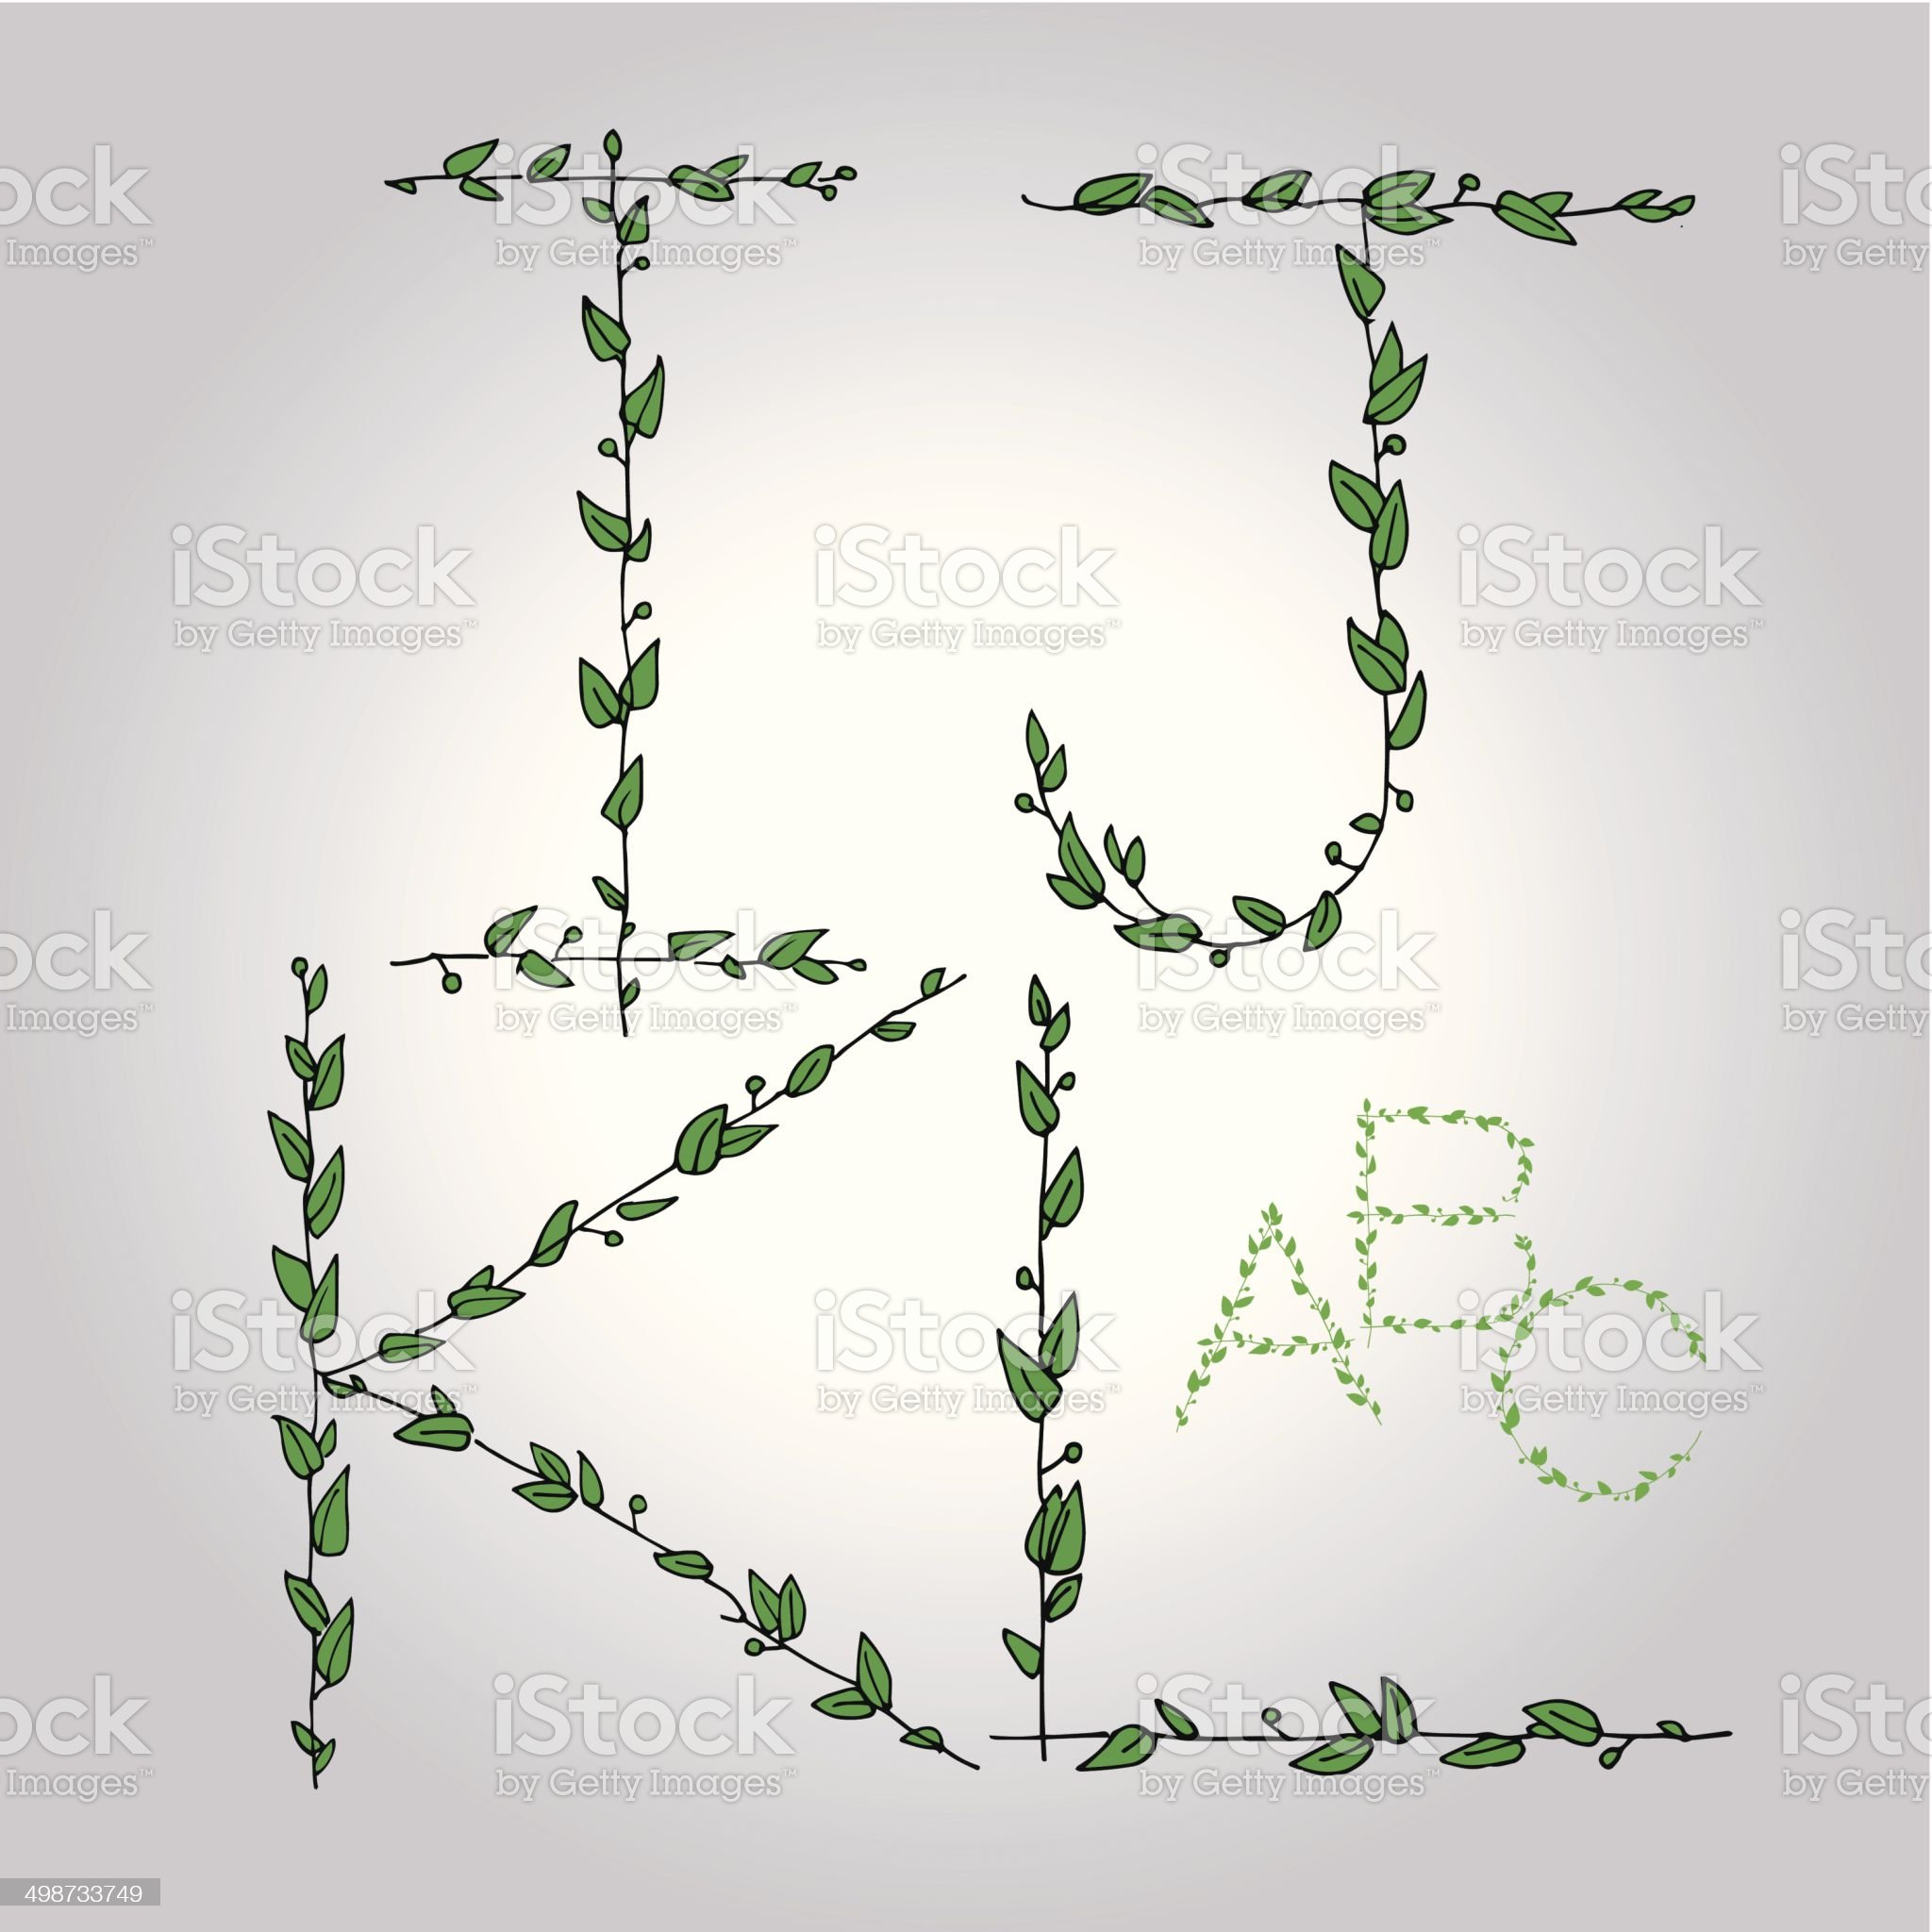 floral_leaves_view_alphabet_ijkl_green royalty-free stock vector art